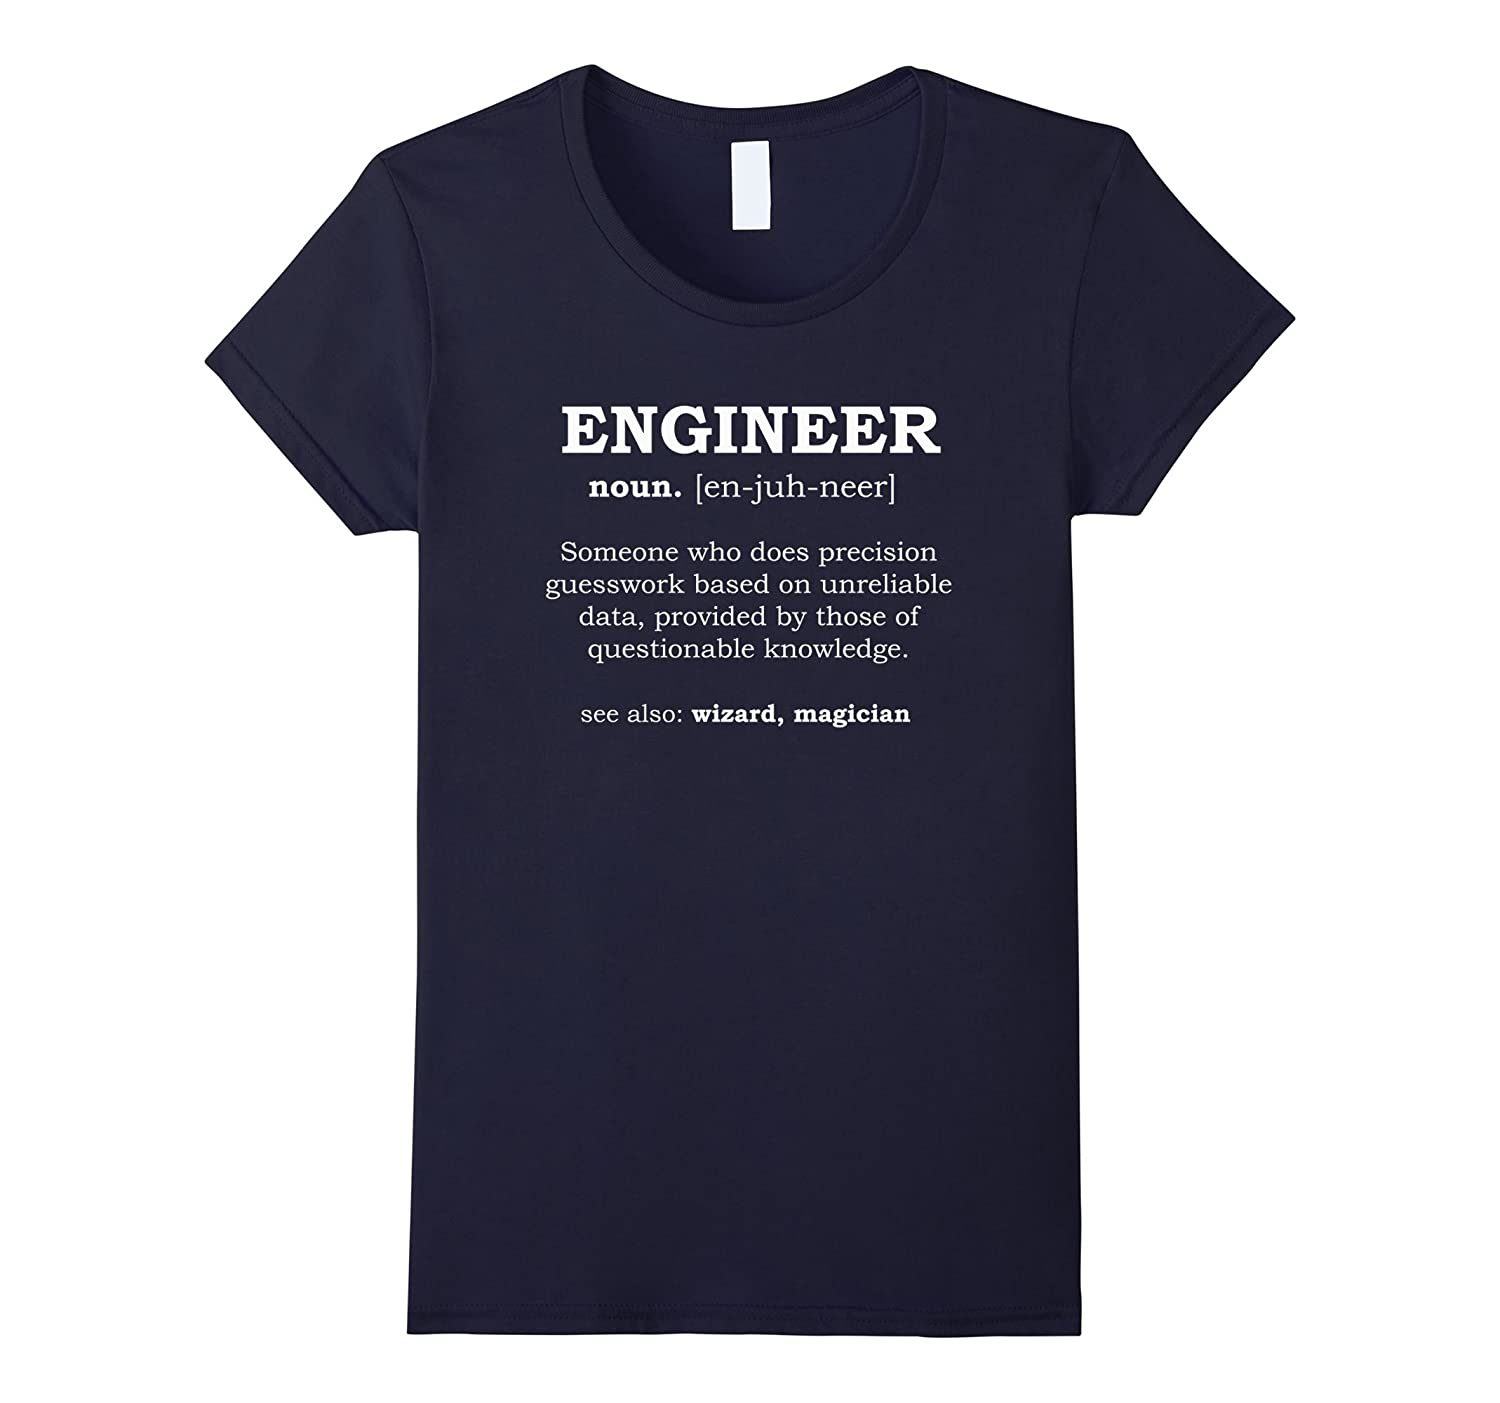 Engineer T-shirt – Funny dictionary definition for wizards